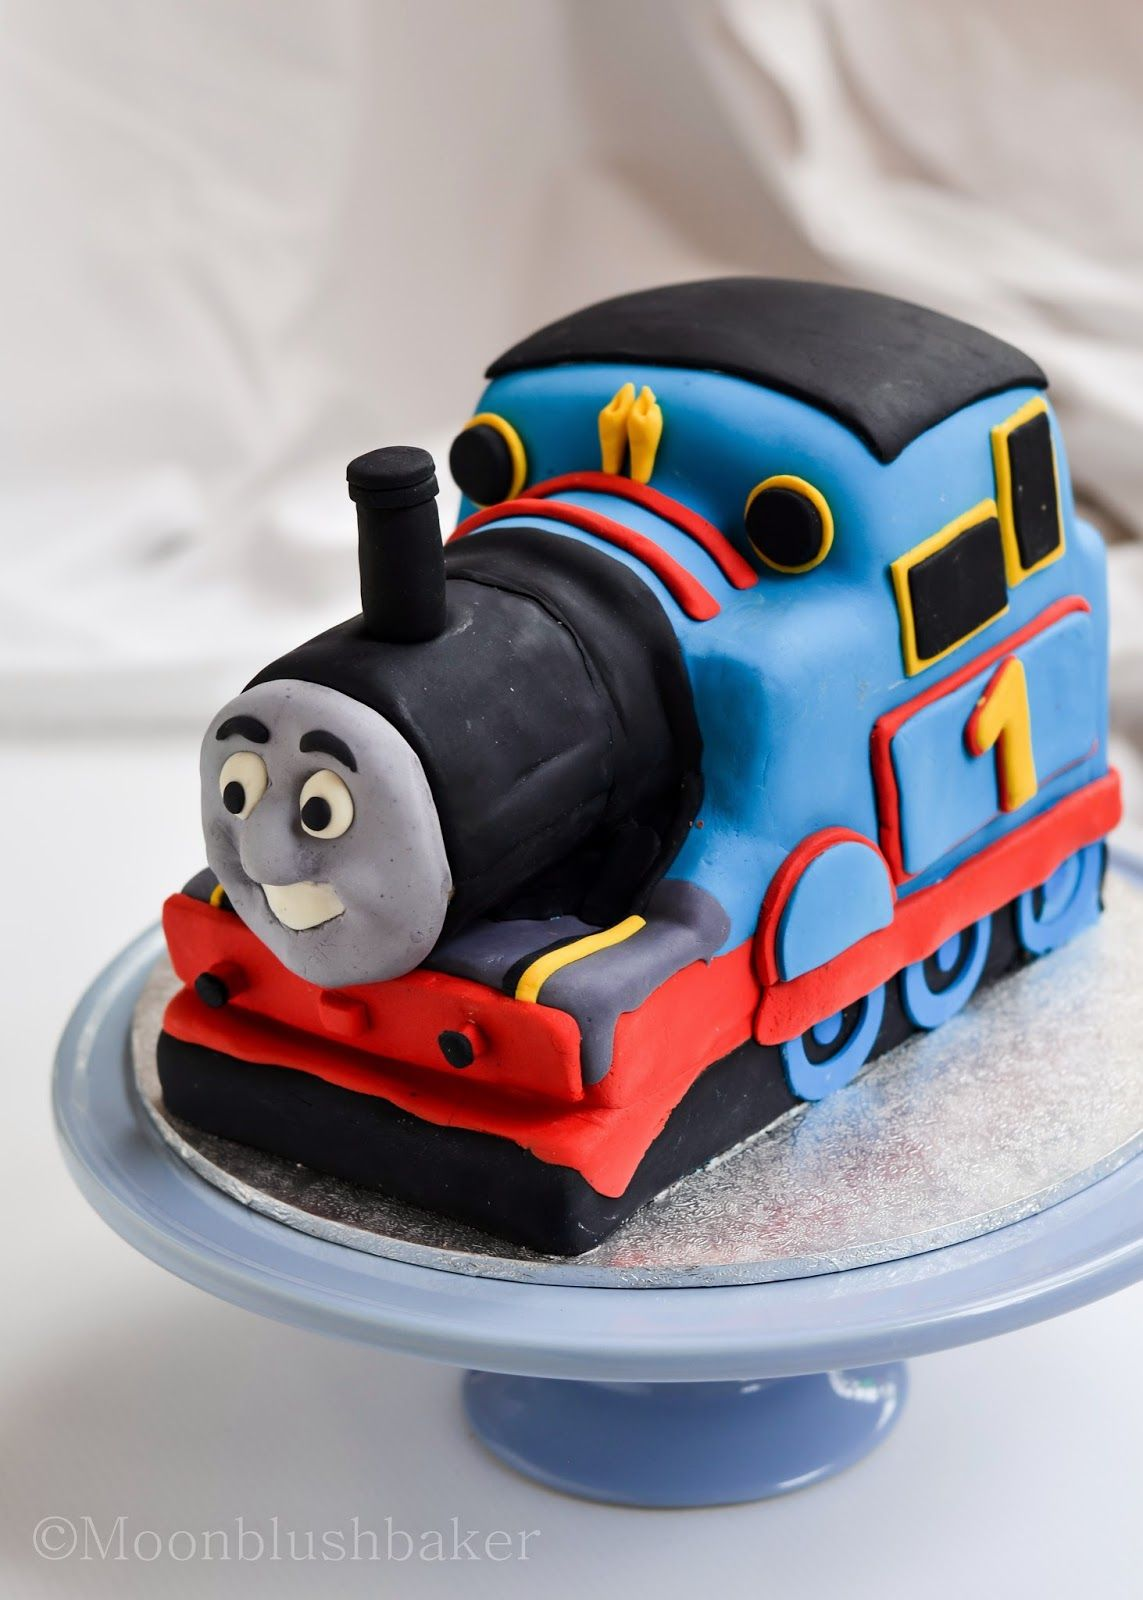 Modelling Muddle How To Make A Fondant Thomas Cake With Carriages Plus Templates Decorating Tutoriaecorating Cakescake Topper